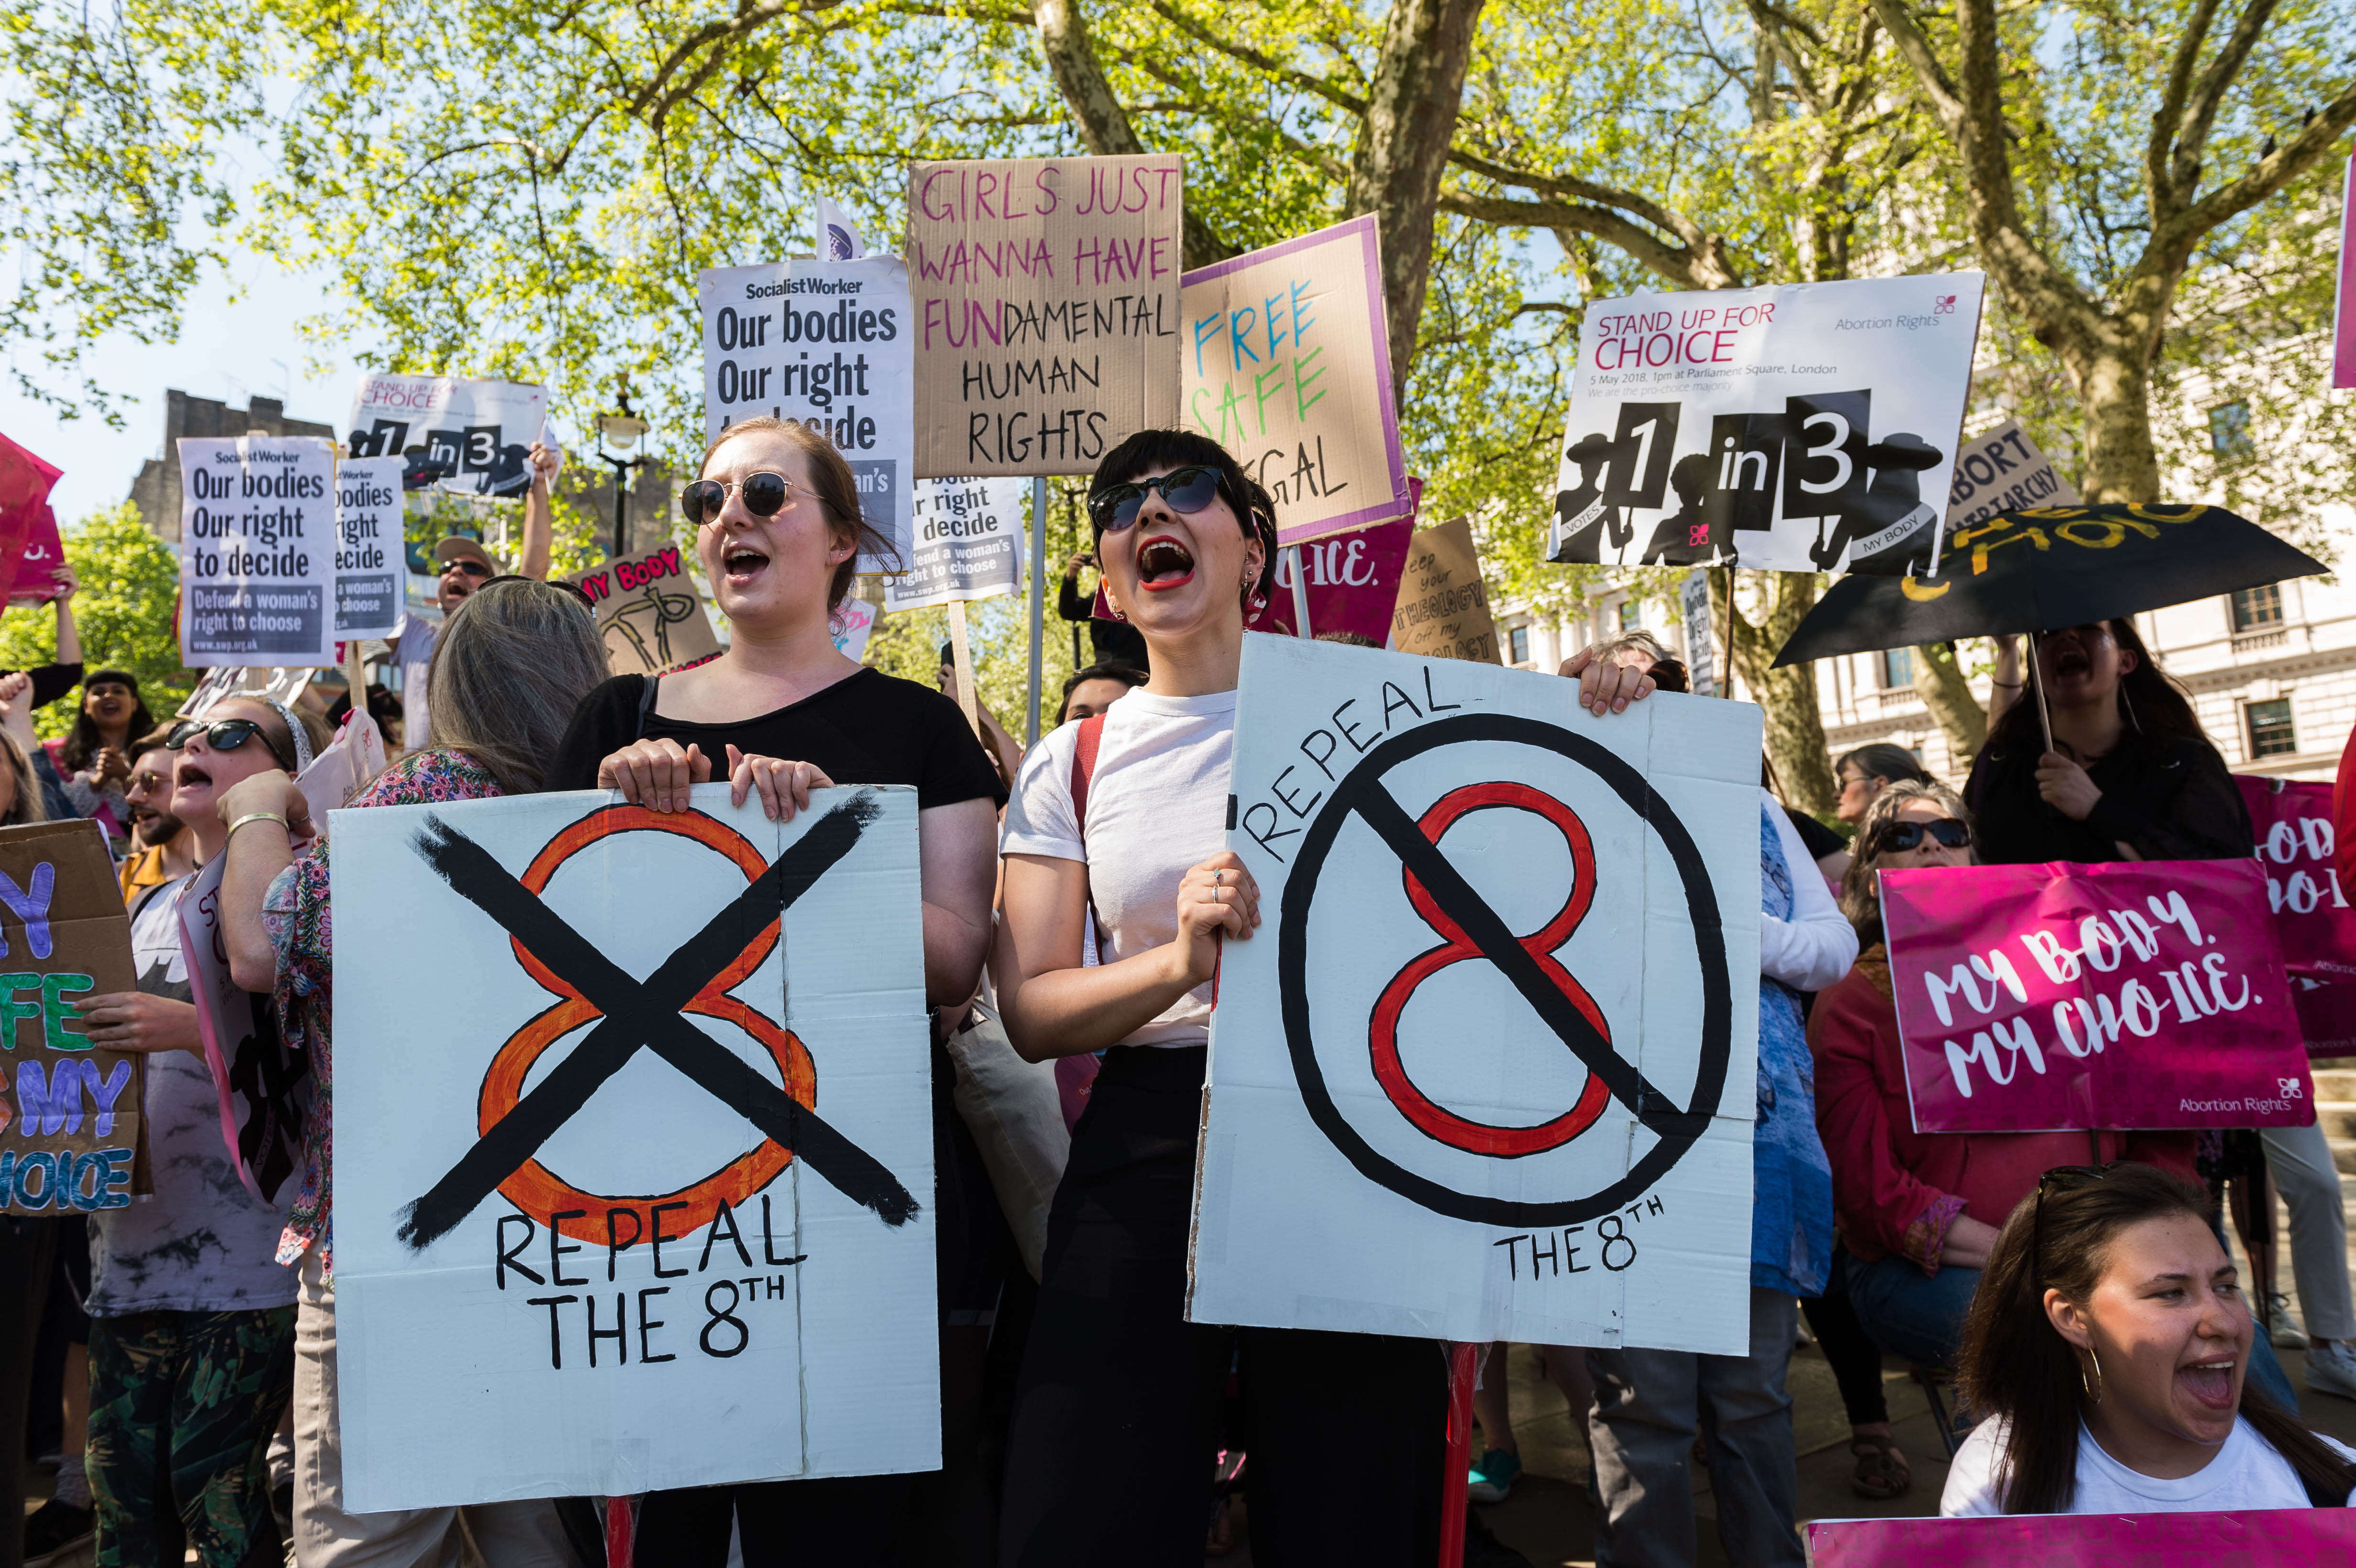 Pro-choice supporters in Parliament Square in London ahead of 25th of May Referendum to remove the eighth amendment from Irish Constitution, on May 5, 2018.